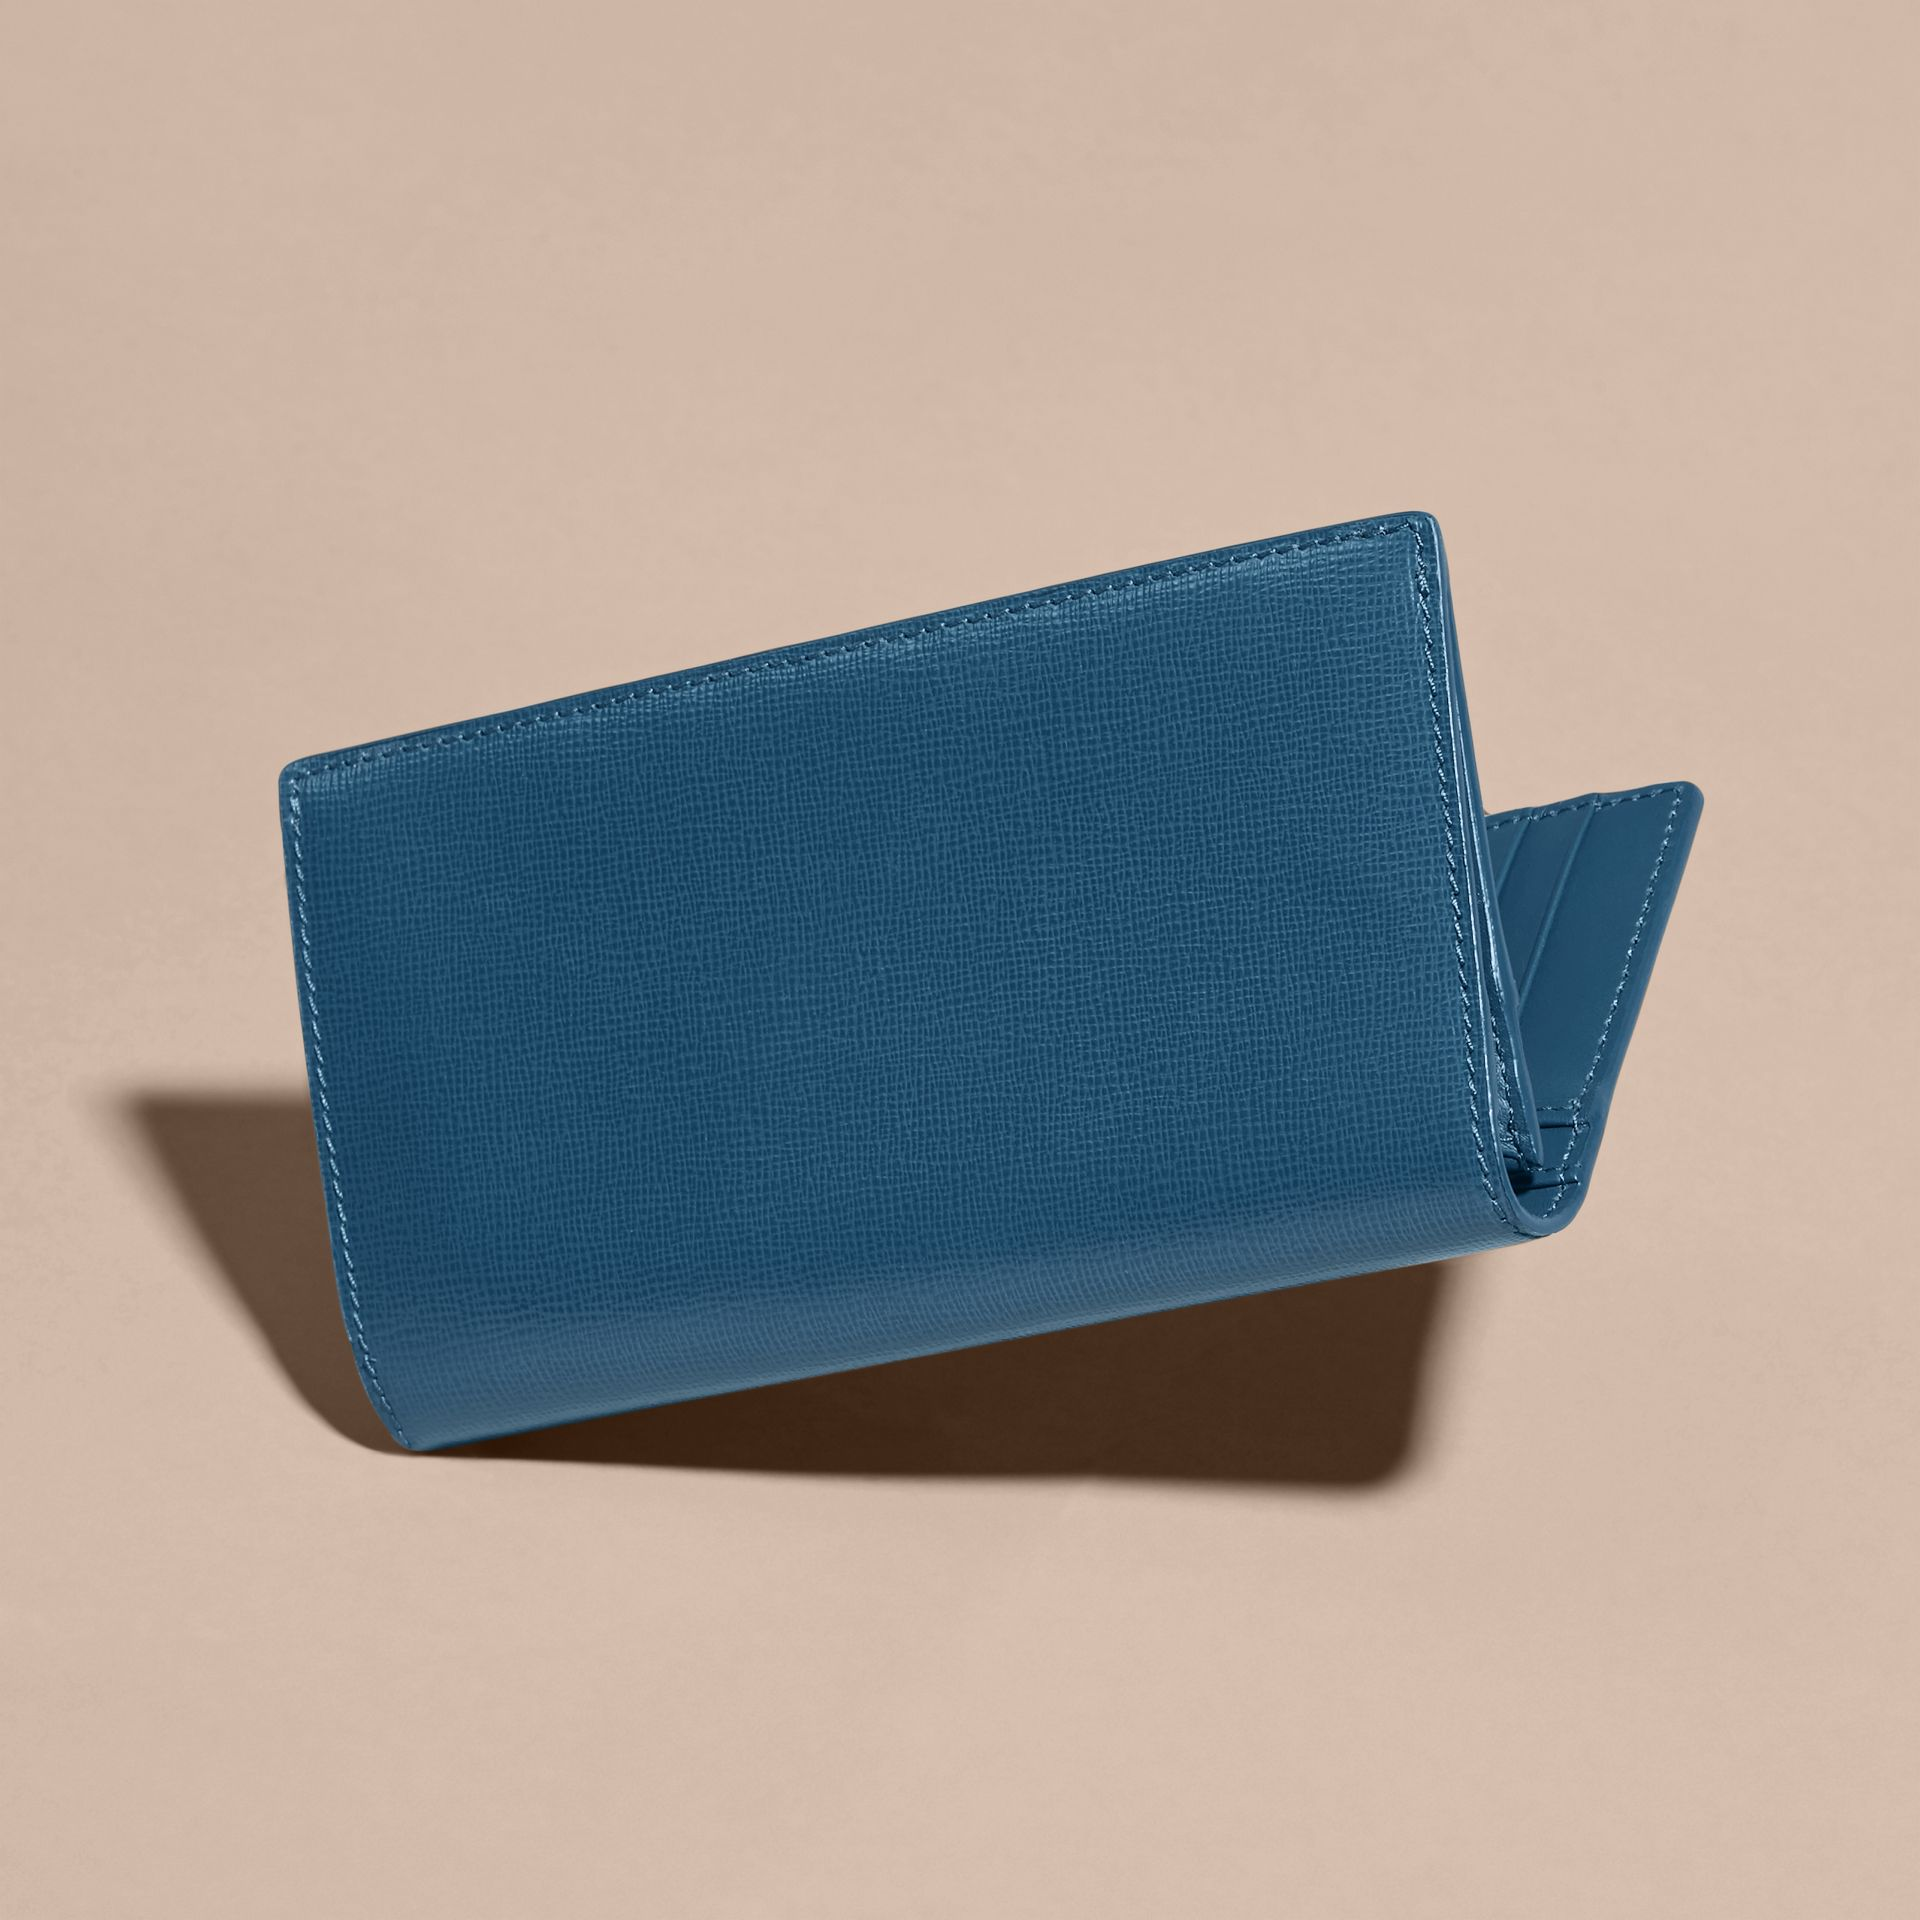 Mineral blue London Leather Continental Wallet Mineral Blue - gallery image 5